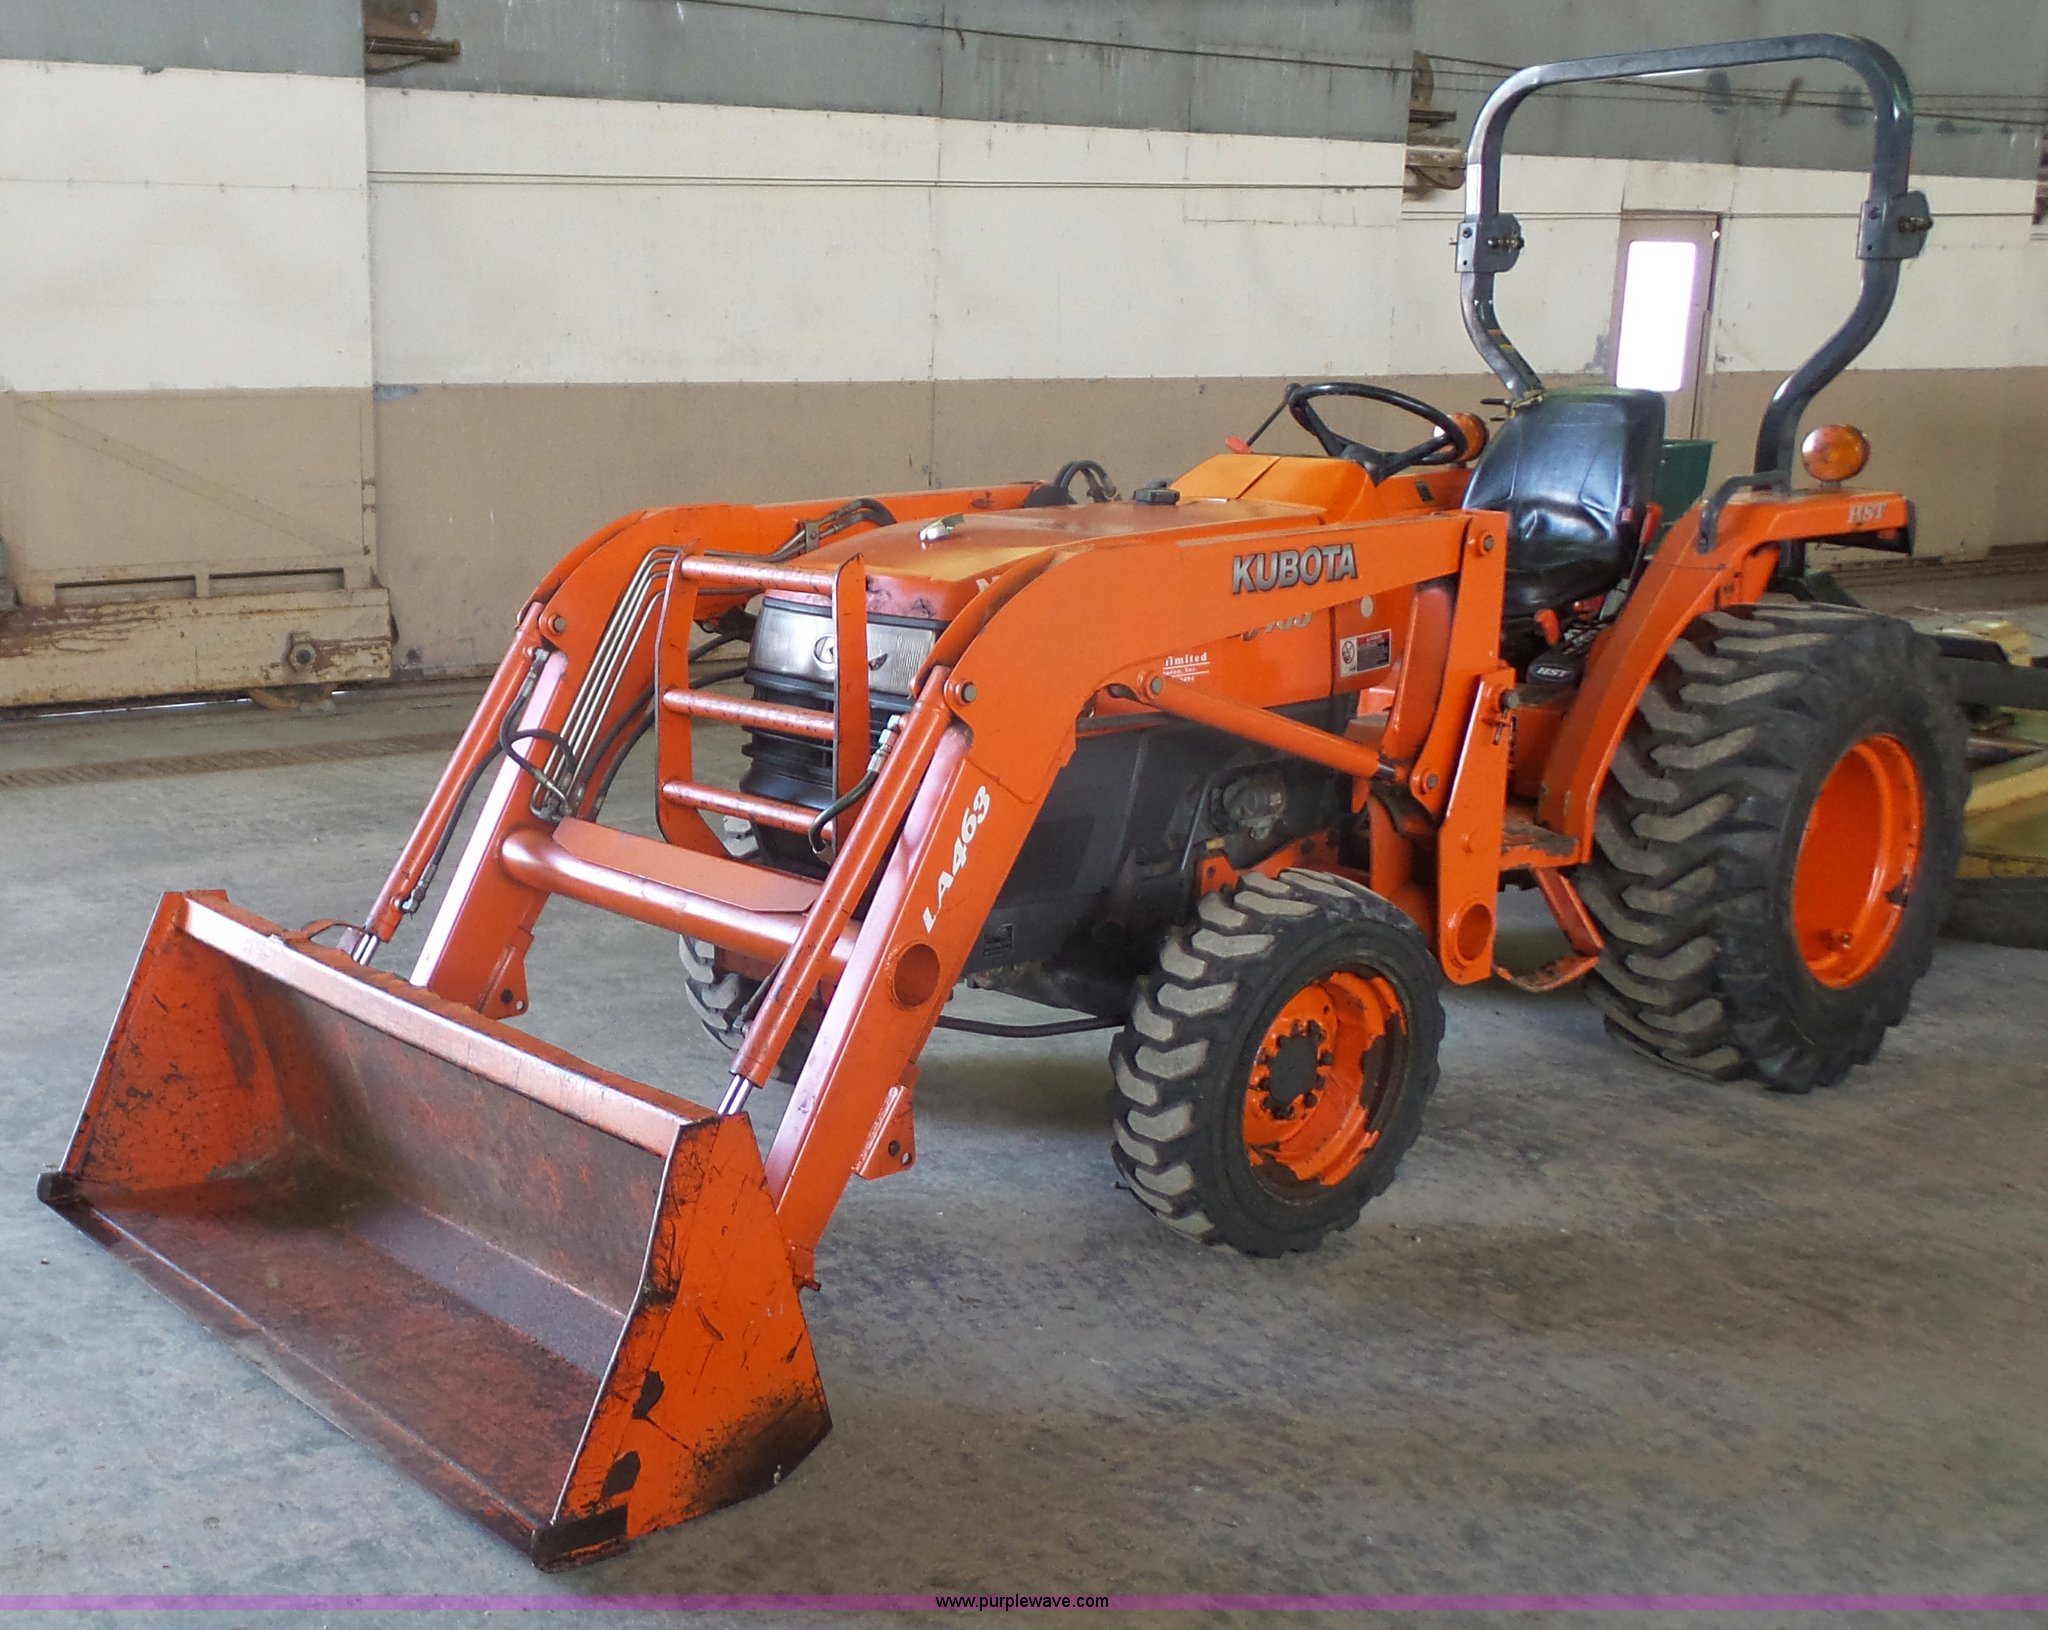 2007 Kubota L3400D MFWD tractor | Item J4688 | SOLD! March 1